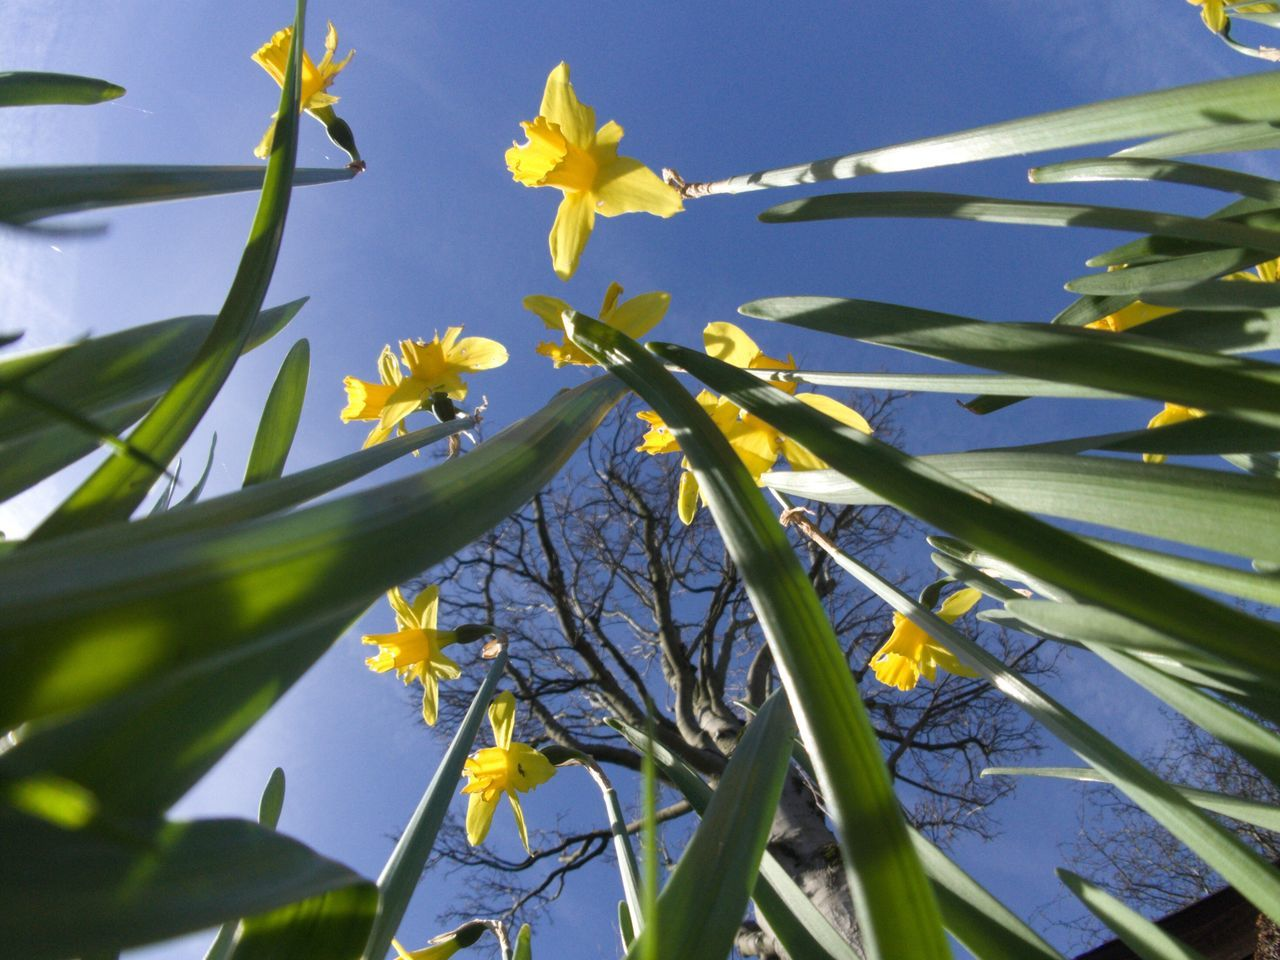 Flower Growth Nature Fragility Yellow Beauty In Nature Freshness Petal Low Angle View No People Plant Sunlight Close-up Blooming Day Sky Outdoors Flower Head Branch Tree Daffodil Springtime Spring